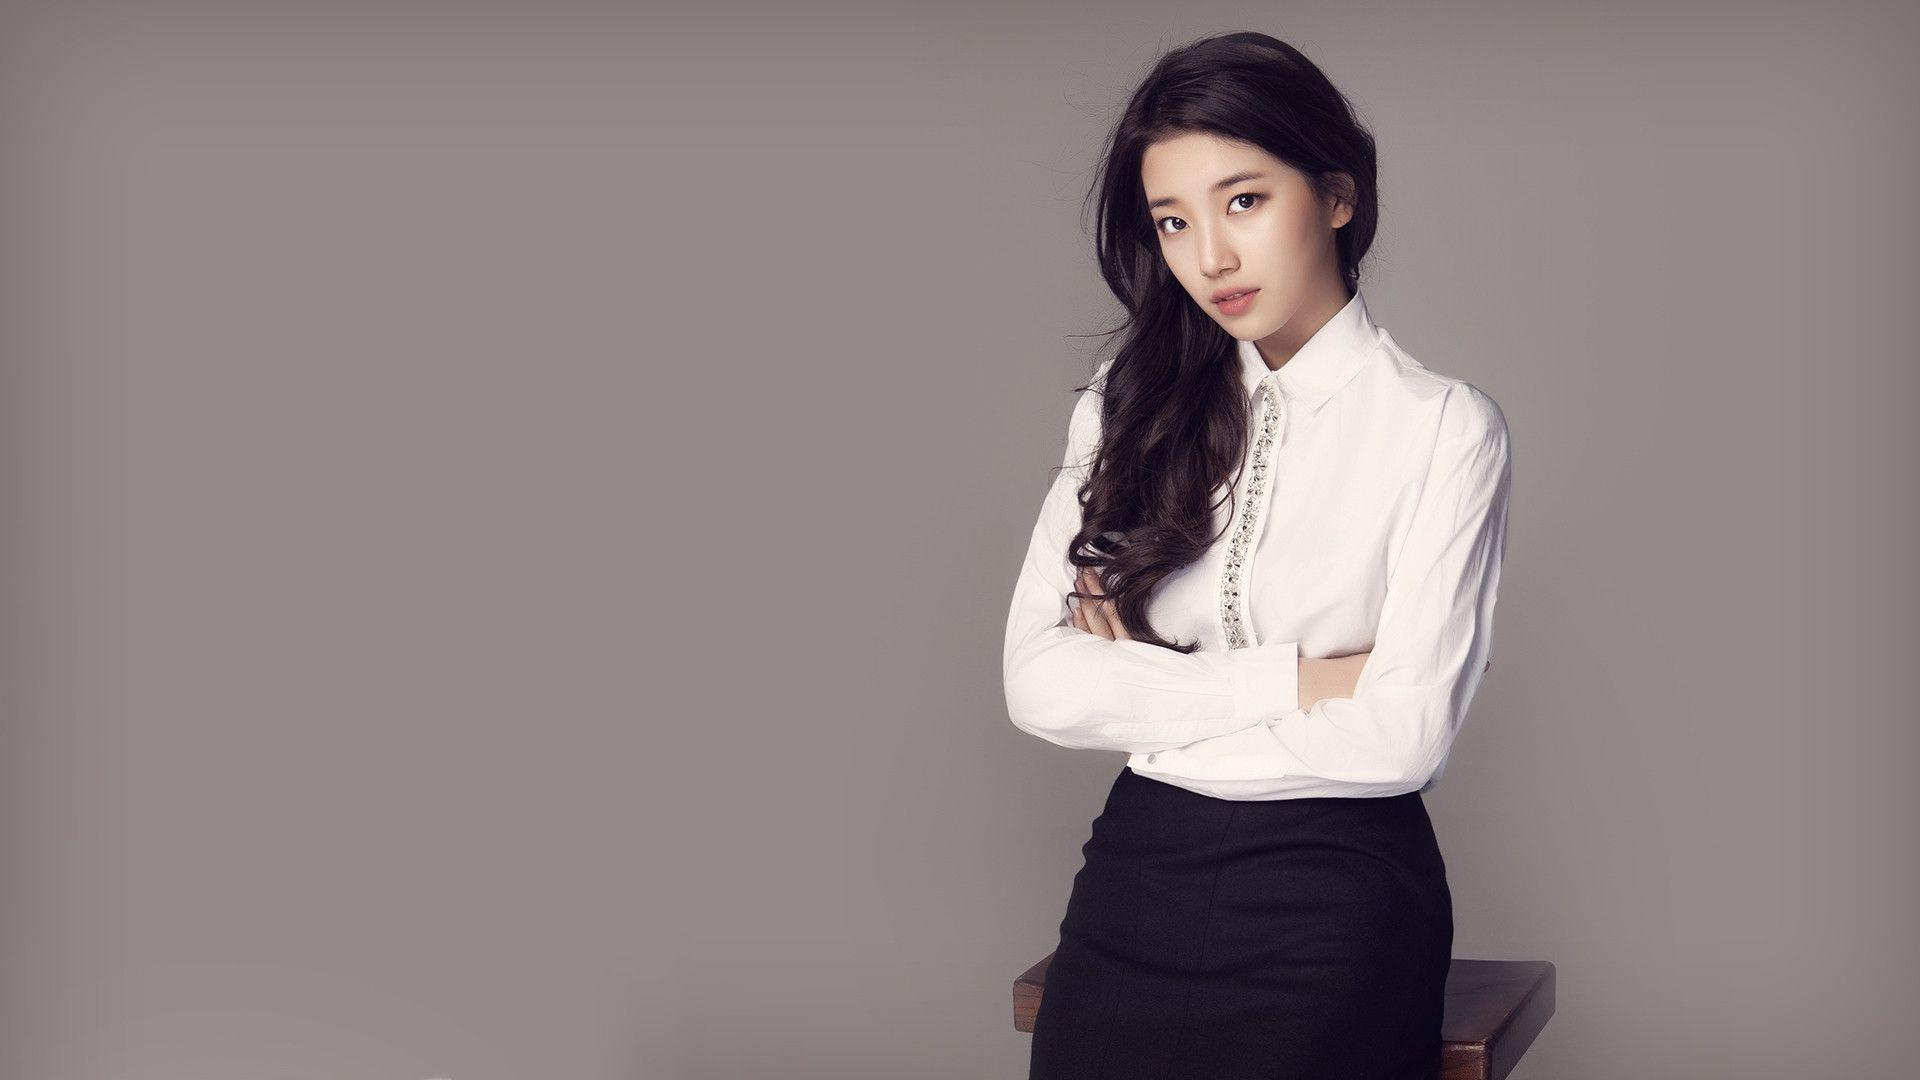 Bae Suzy stupendous Full HD wallpaper Free - Download Bae Suzy ...